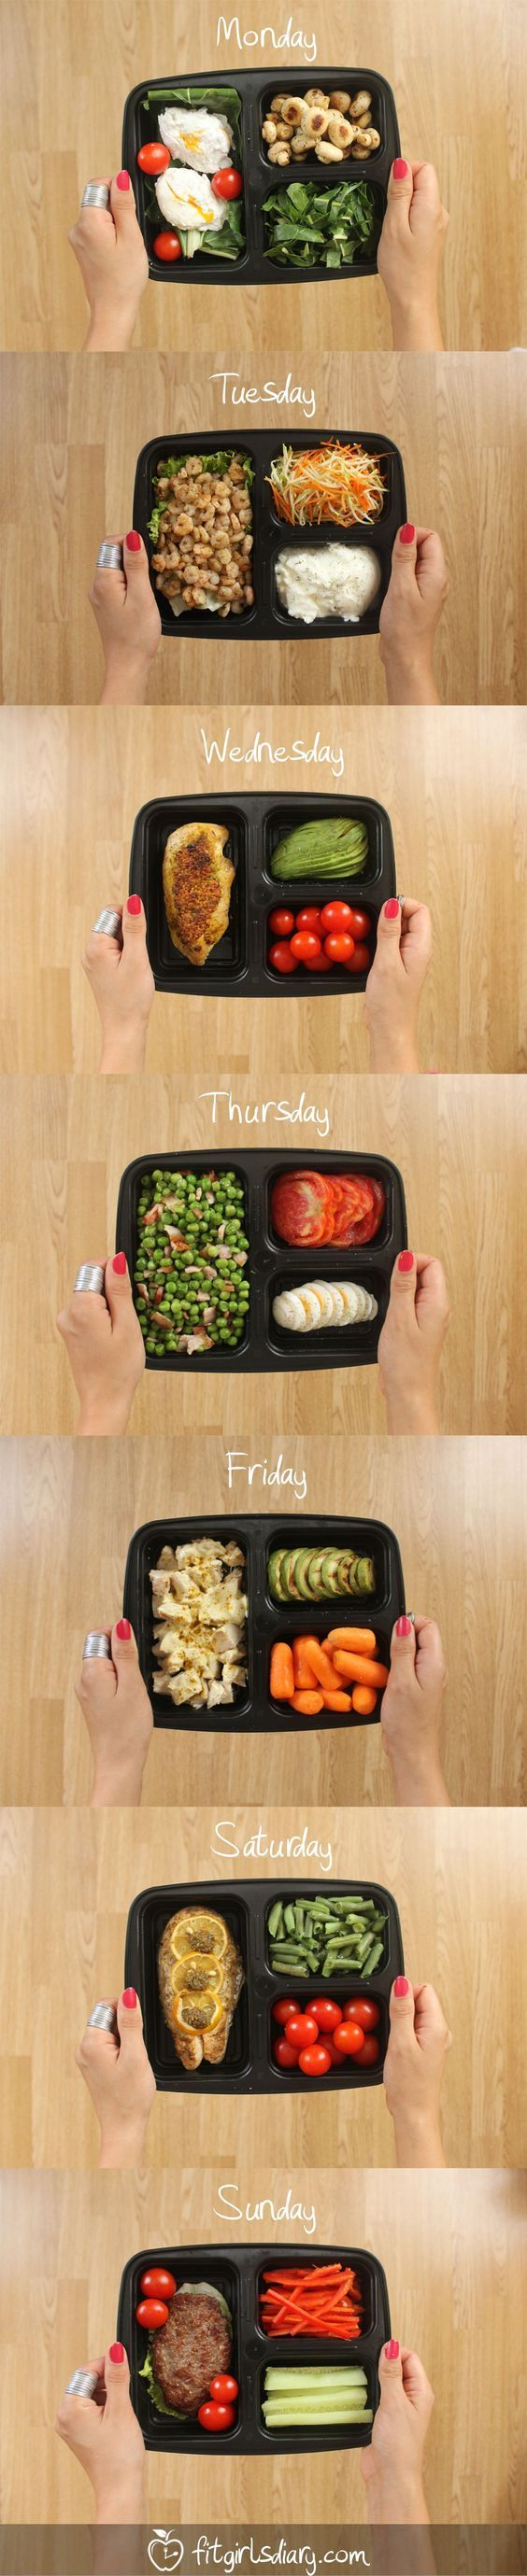 :) 7 Days Of Healthy Meal Prep Ideas – Ready To Eat Meals and Protein On The Go Recipes: | Más en https://lomejordelaweb.